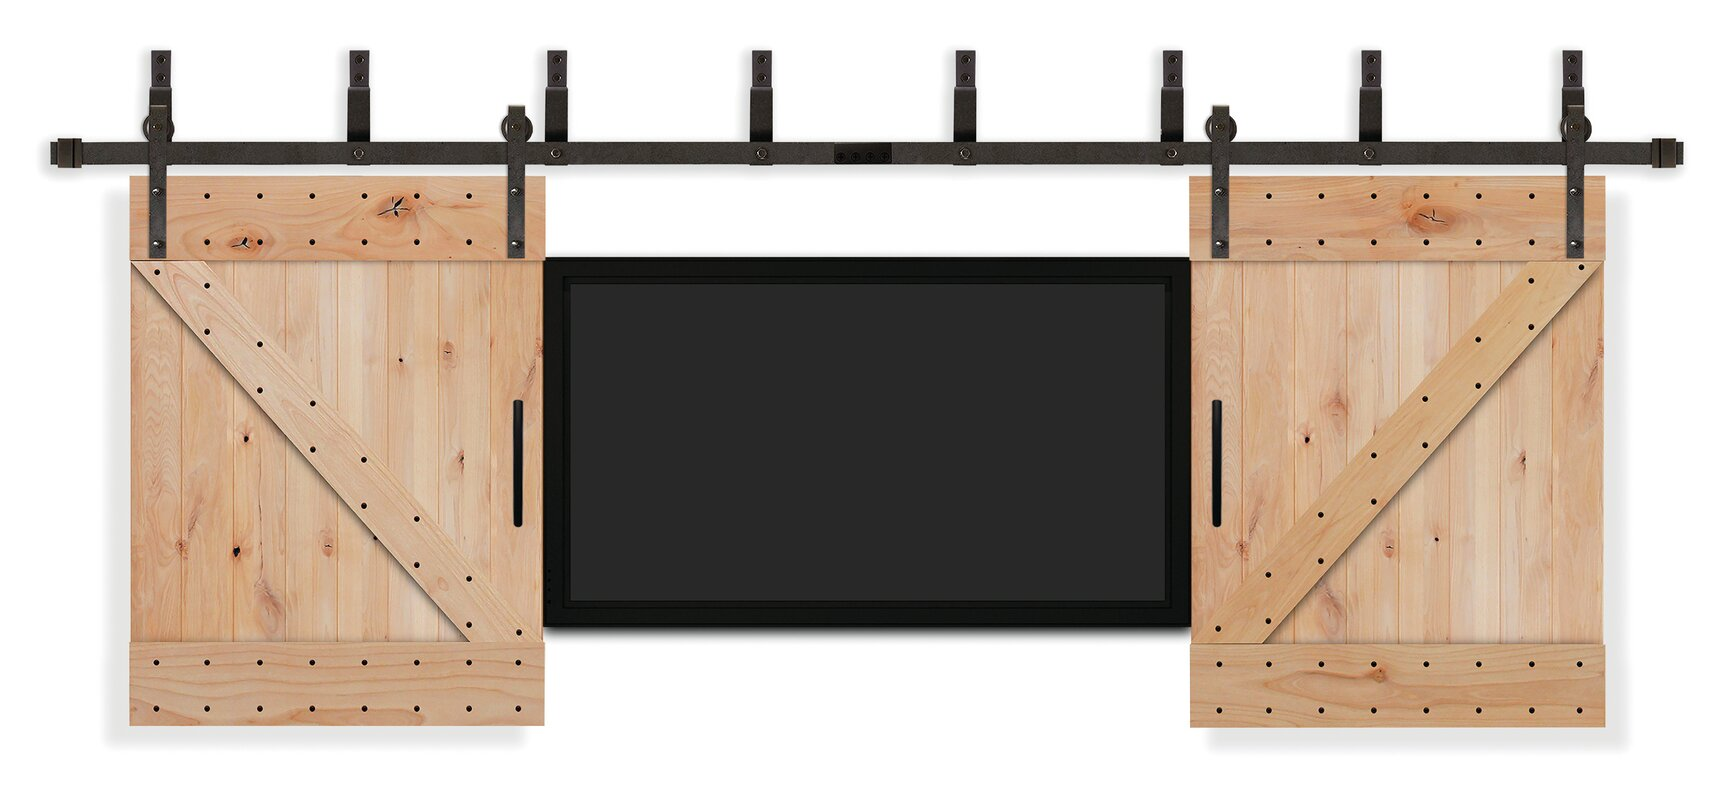 Rustic Knotty Alder Unfinished Tv Interior Barn Door